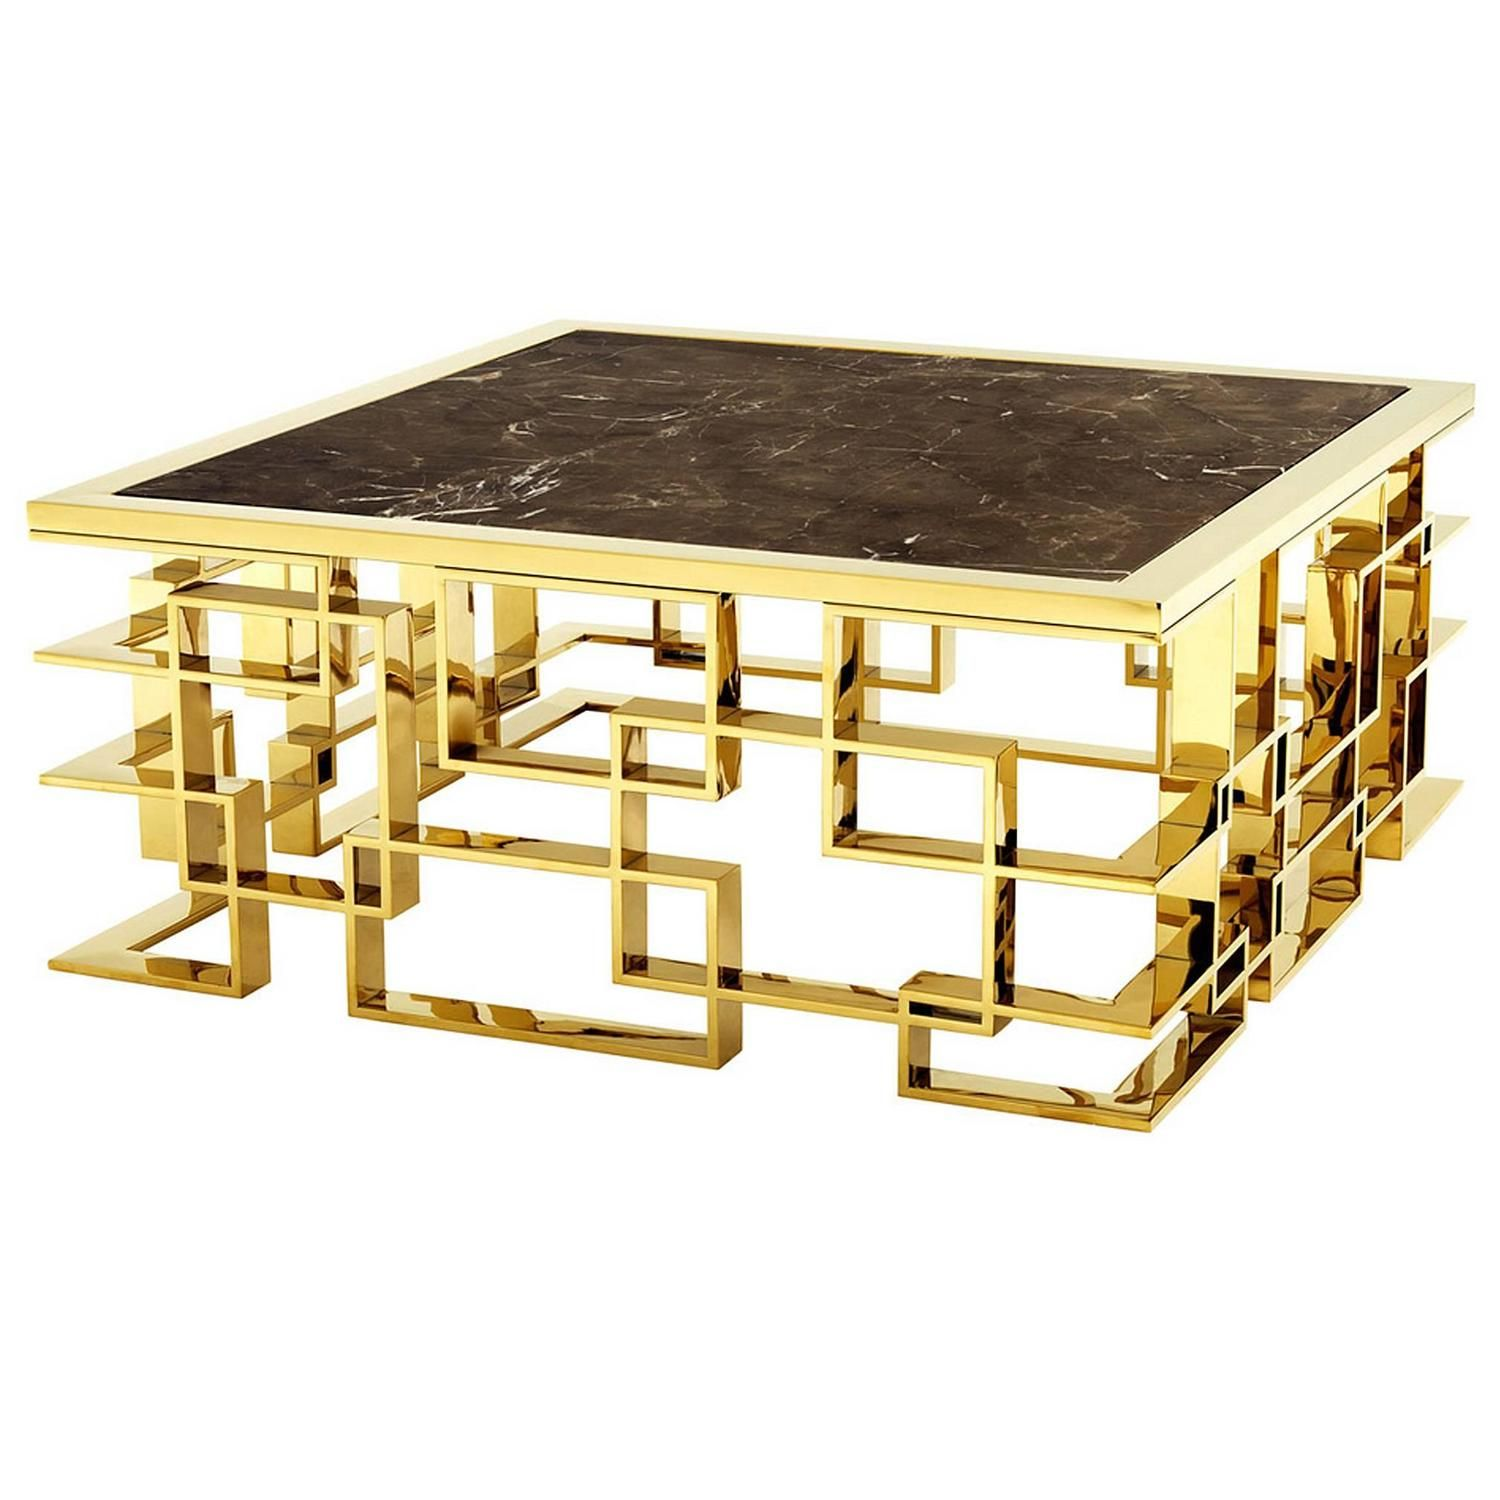 Gold metal coffee table Coffee table Pinterest